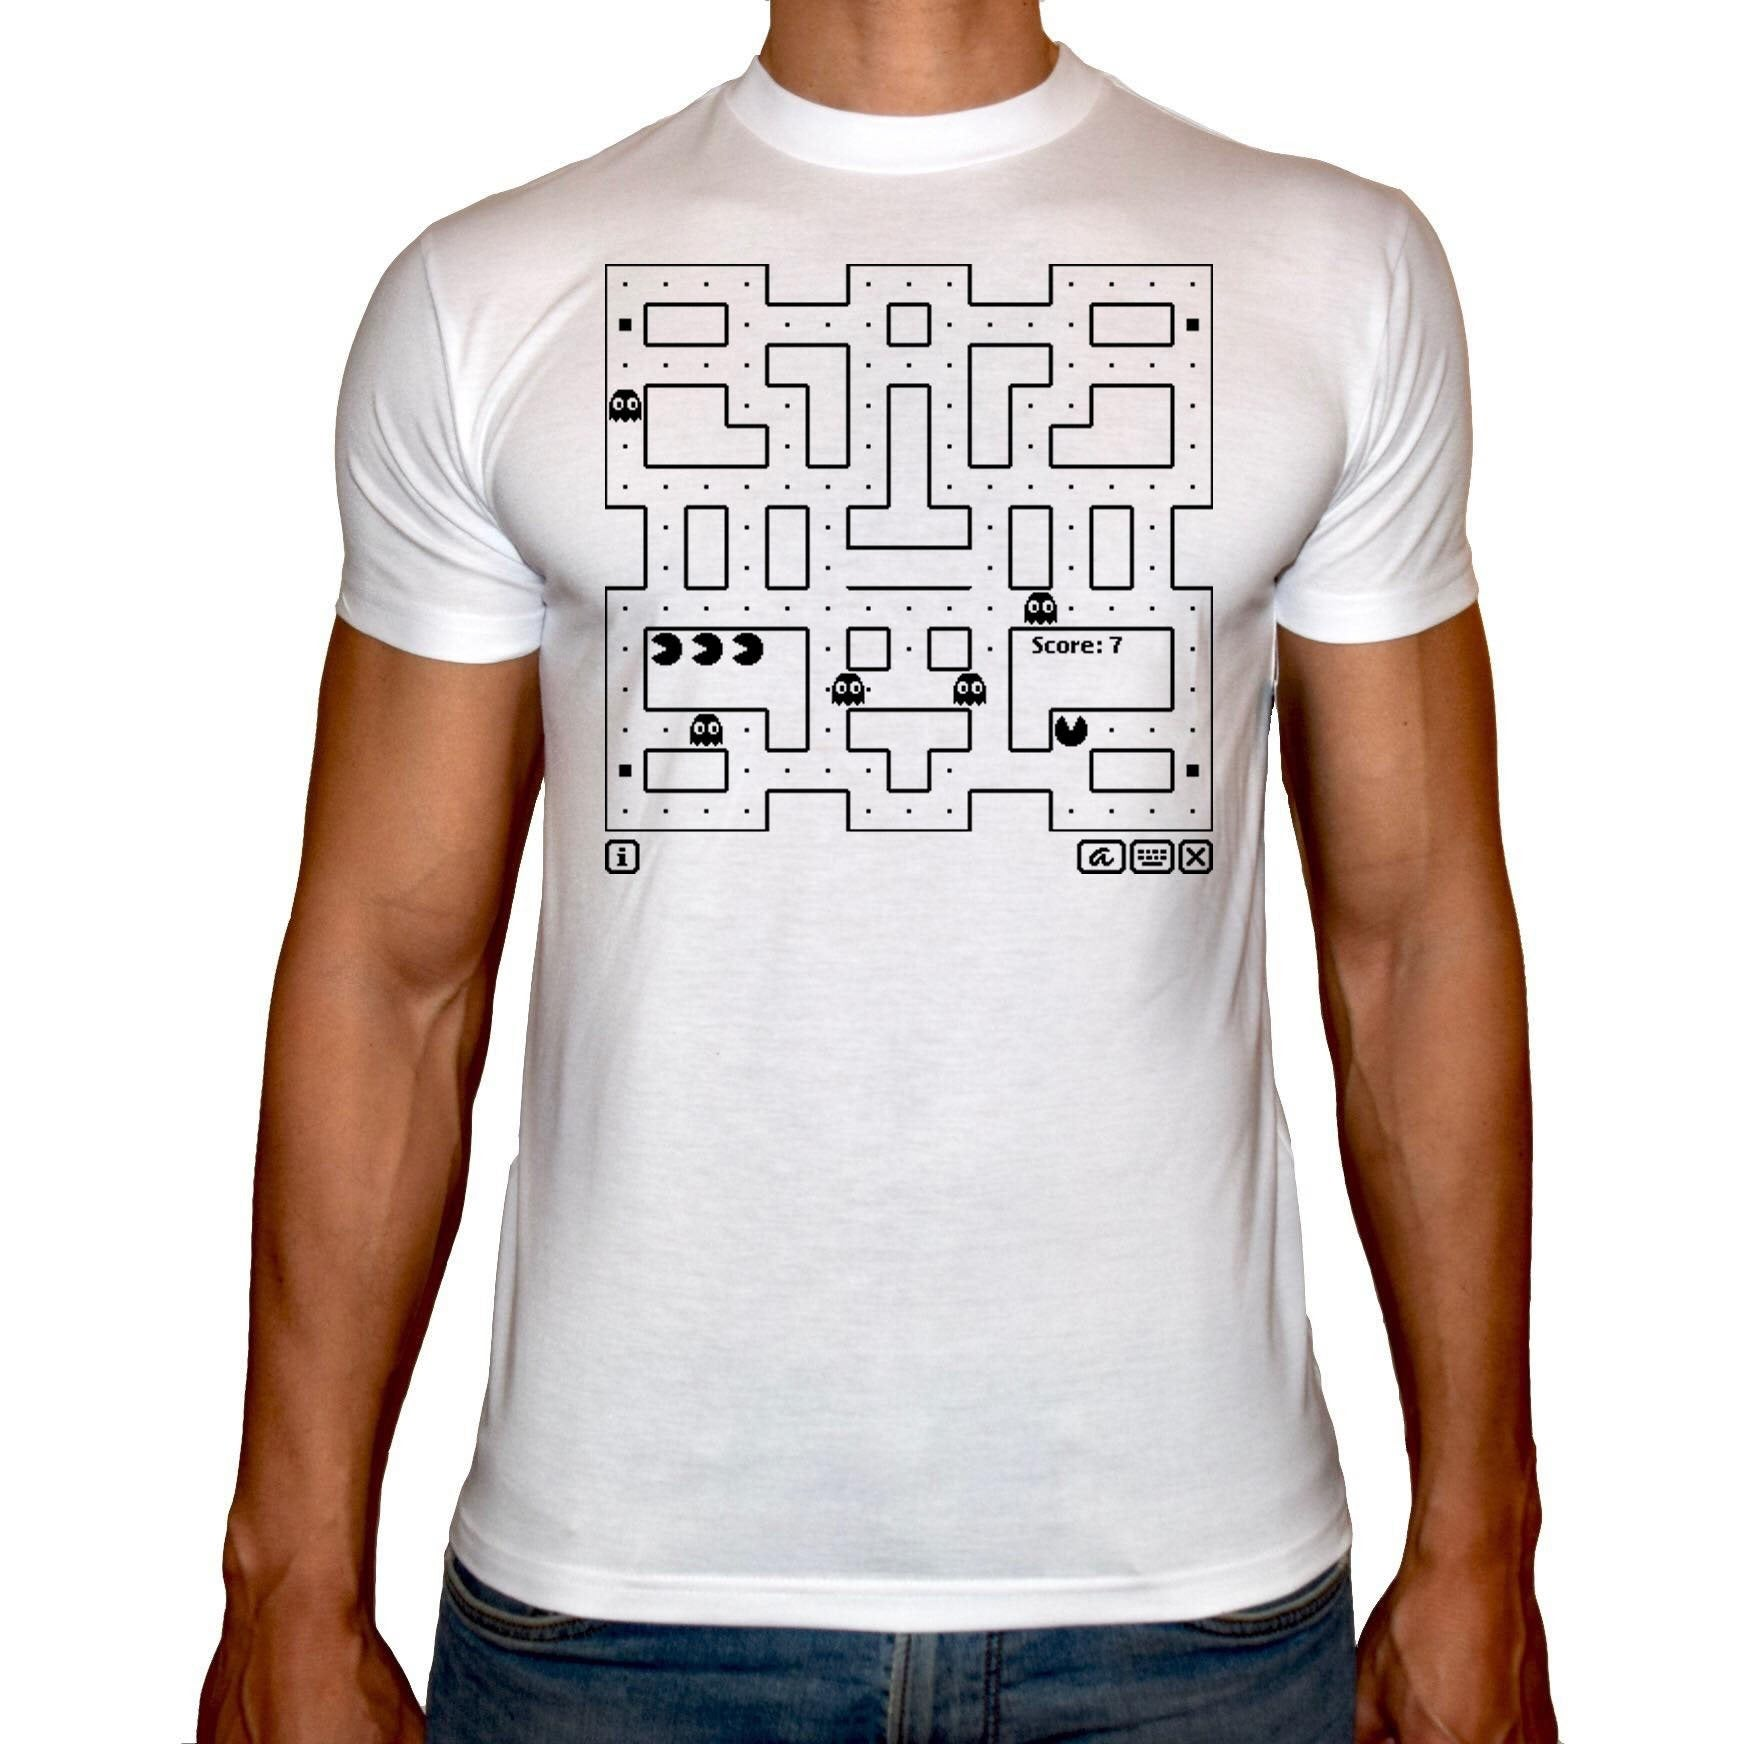 Phoenix WHITE Round Neck Printed T-Shirt Men (Pacman)